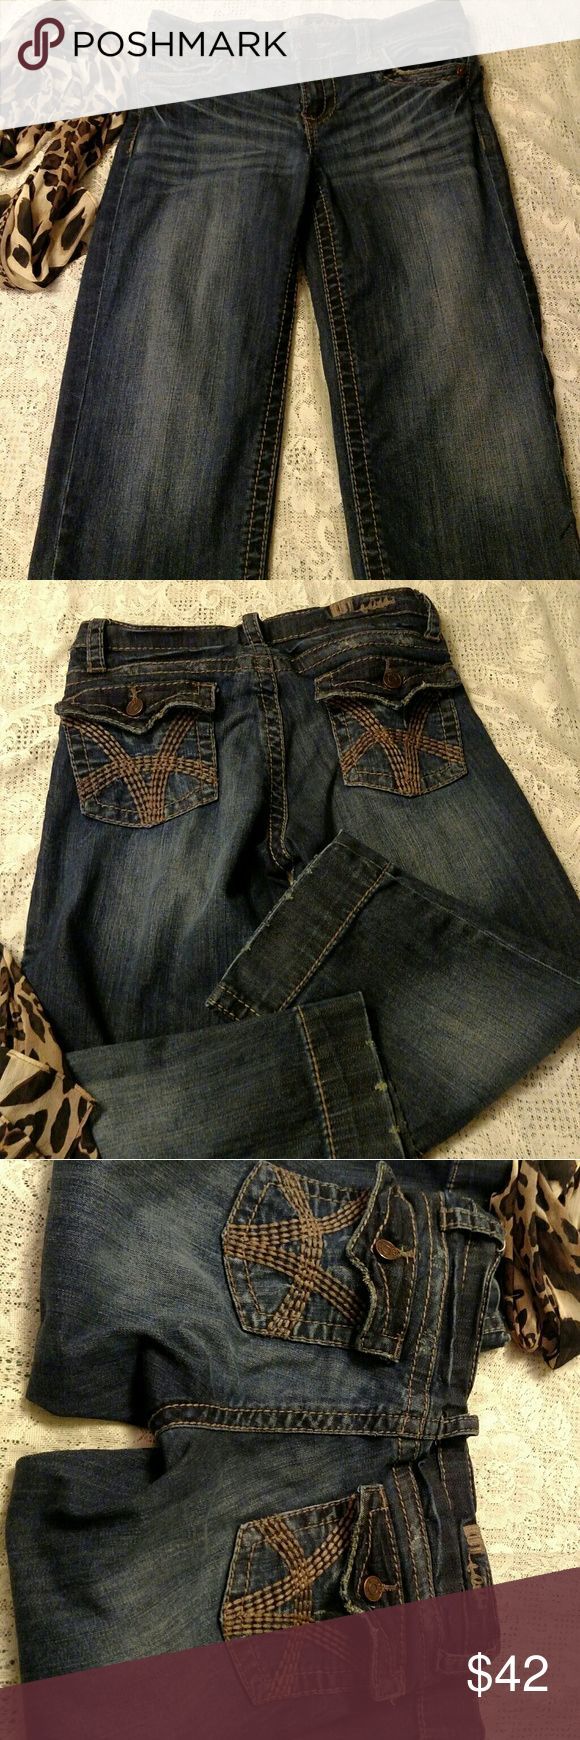 KUT from the kloth Jean Capris ADORABLE KUT JEAN CAPRIS.  Size 2.  Distressed look.  Approximate measures are noted in the pictures above.  Pre-loved but in excellent shape. Kut from the Kloth Jeans Ankle & Cropped